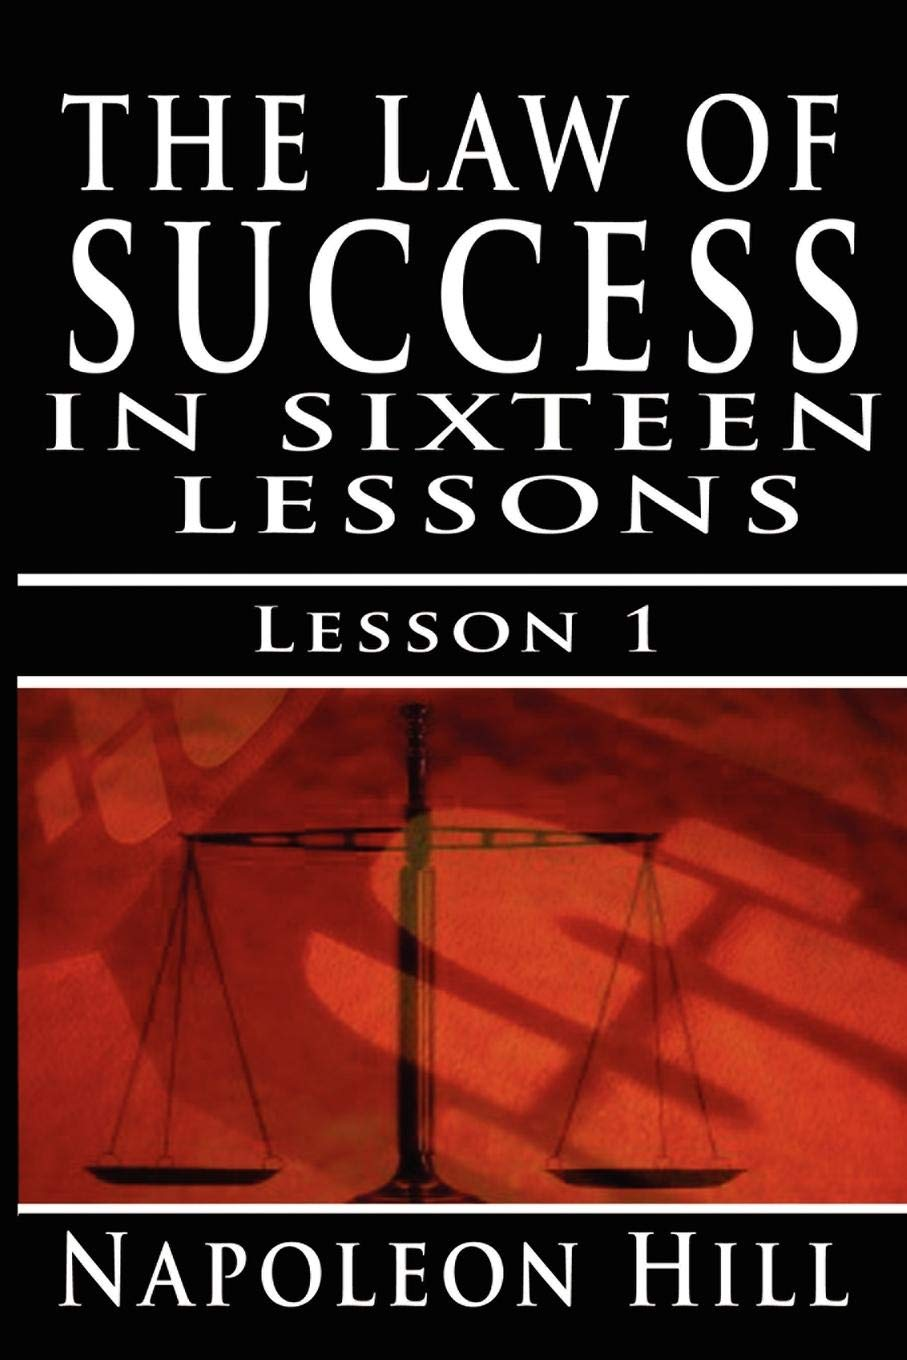 The Law of Success, Volume I: The Principles of Self-Mastery (Law of Success,  Vol 1): Napoleon Hill: 9789562912587: Amazon.com: Books